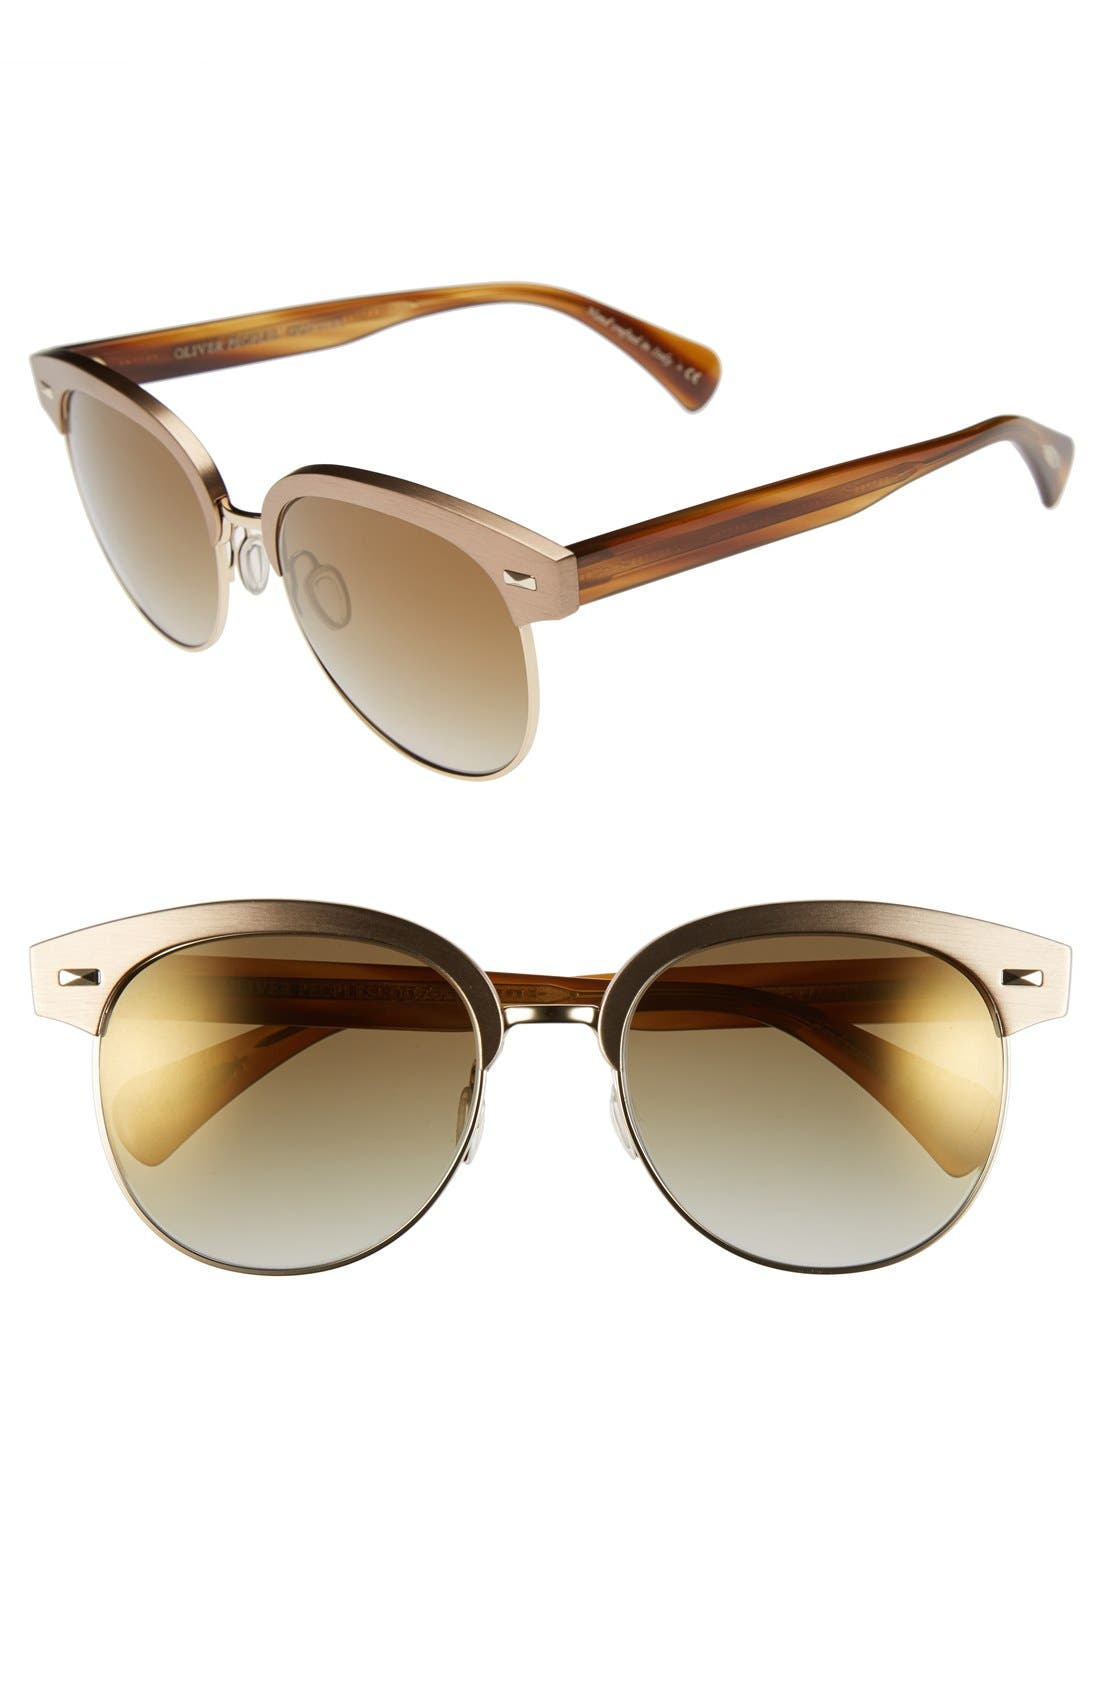 Alternate Image 1 Selected - Oliver Peoples 'Shaelie' 55mm Sunglasses